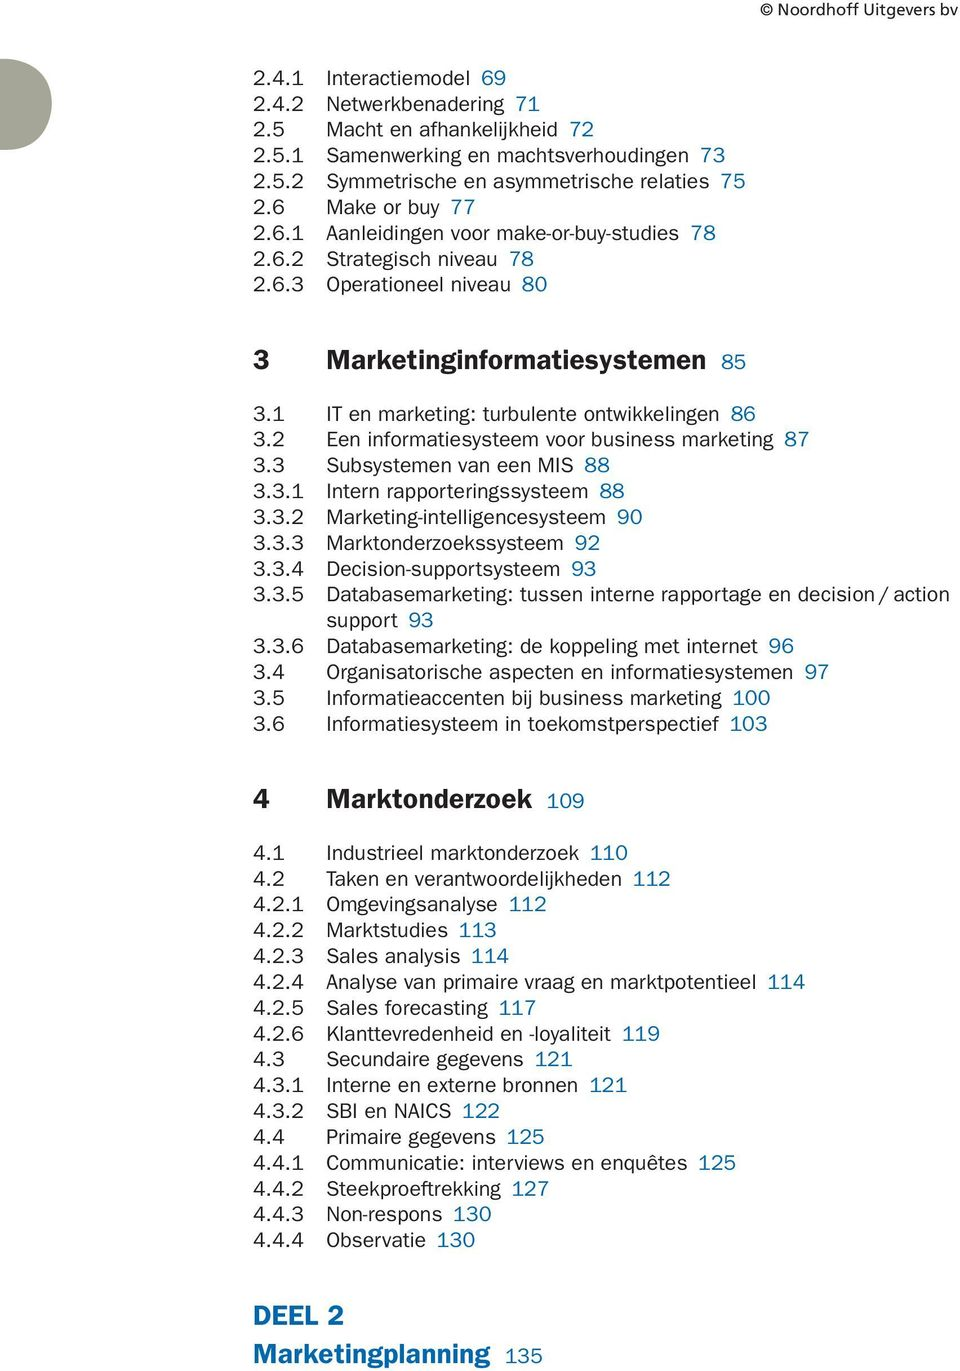 IT en marketing: turbulente ontwikkelingen 86 3.2 Een informatiesysteem voor business marketing 87 3.3 Subsystemen van een MIS 88 3.3. Intern rapporteringssysteem 88 3.3.2 Marketing-intelligencesysteem 90 3.